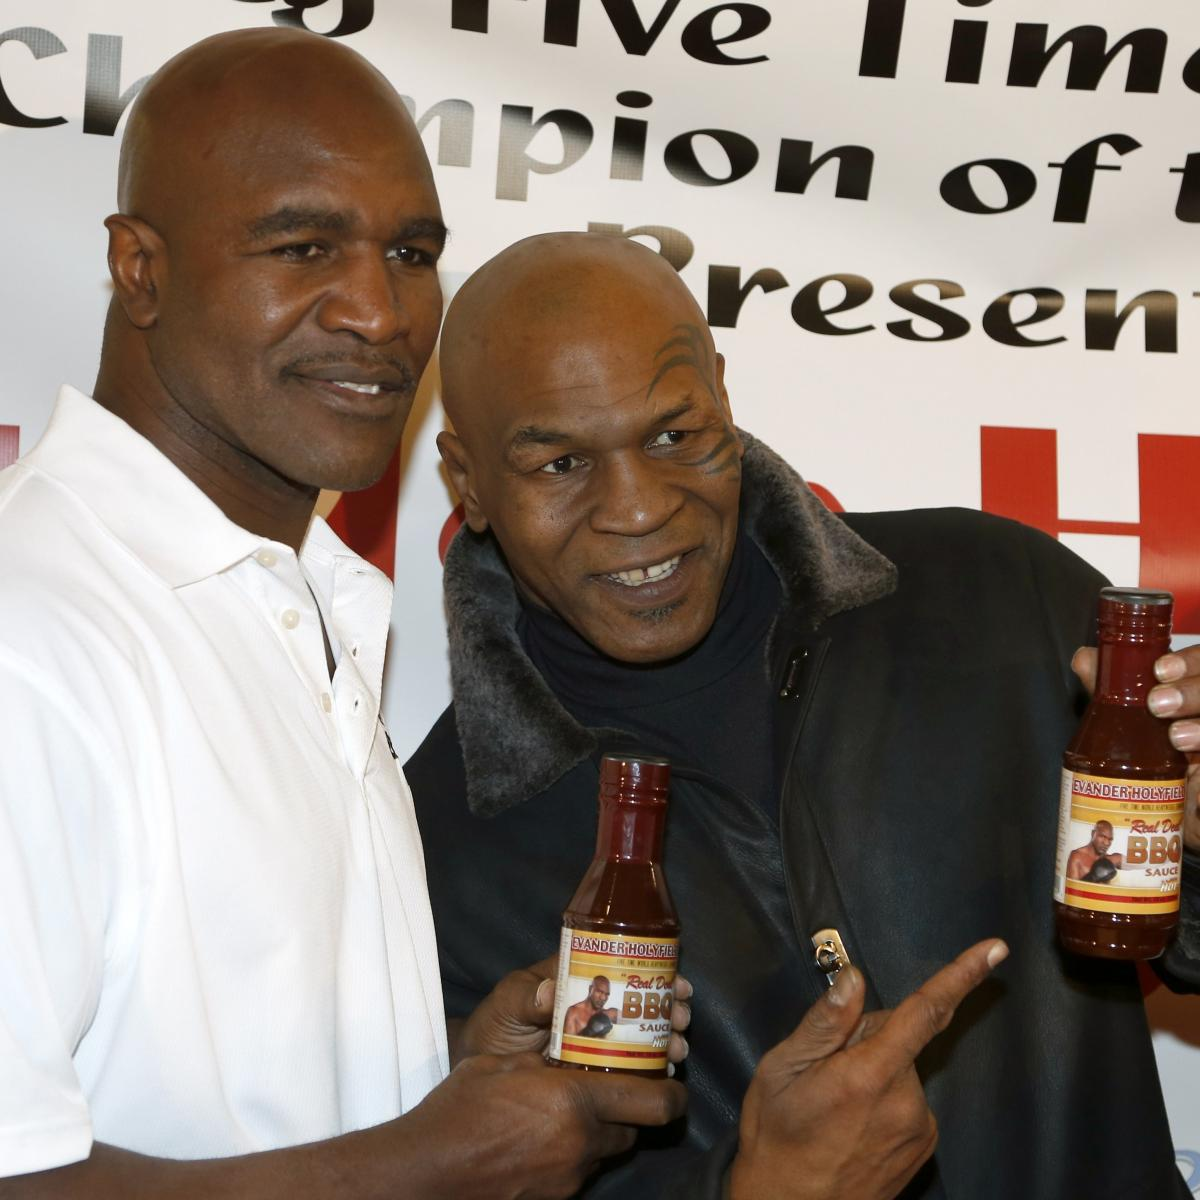 Mike Tyson To Induct Evander Holyfield Into Nevada Boxing